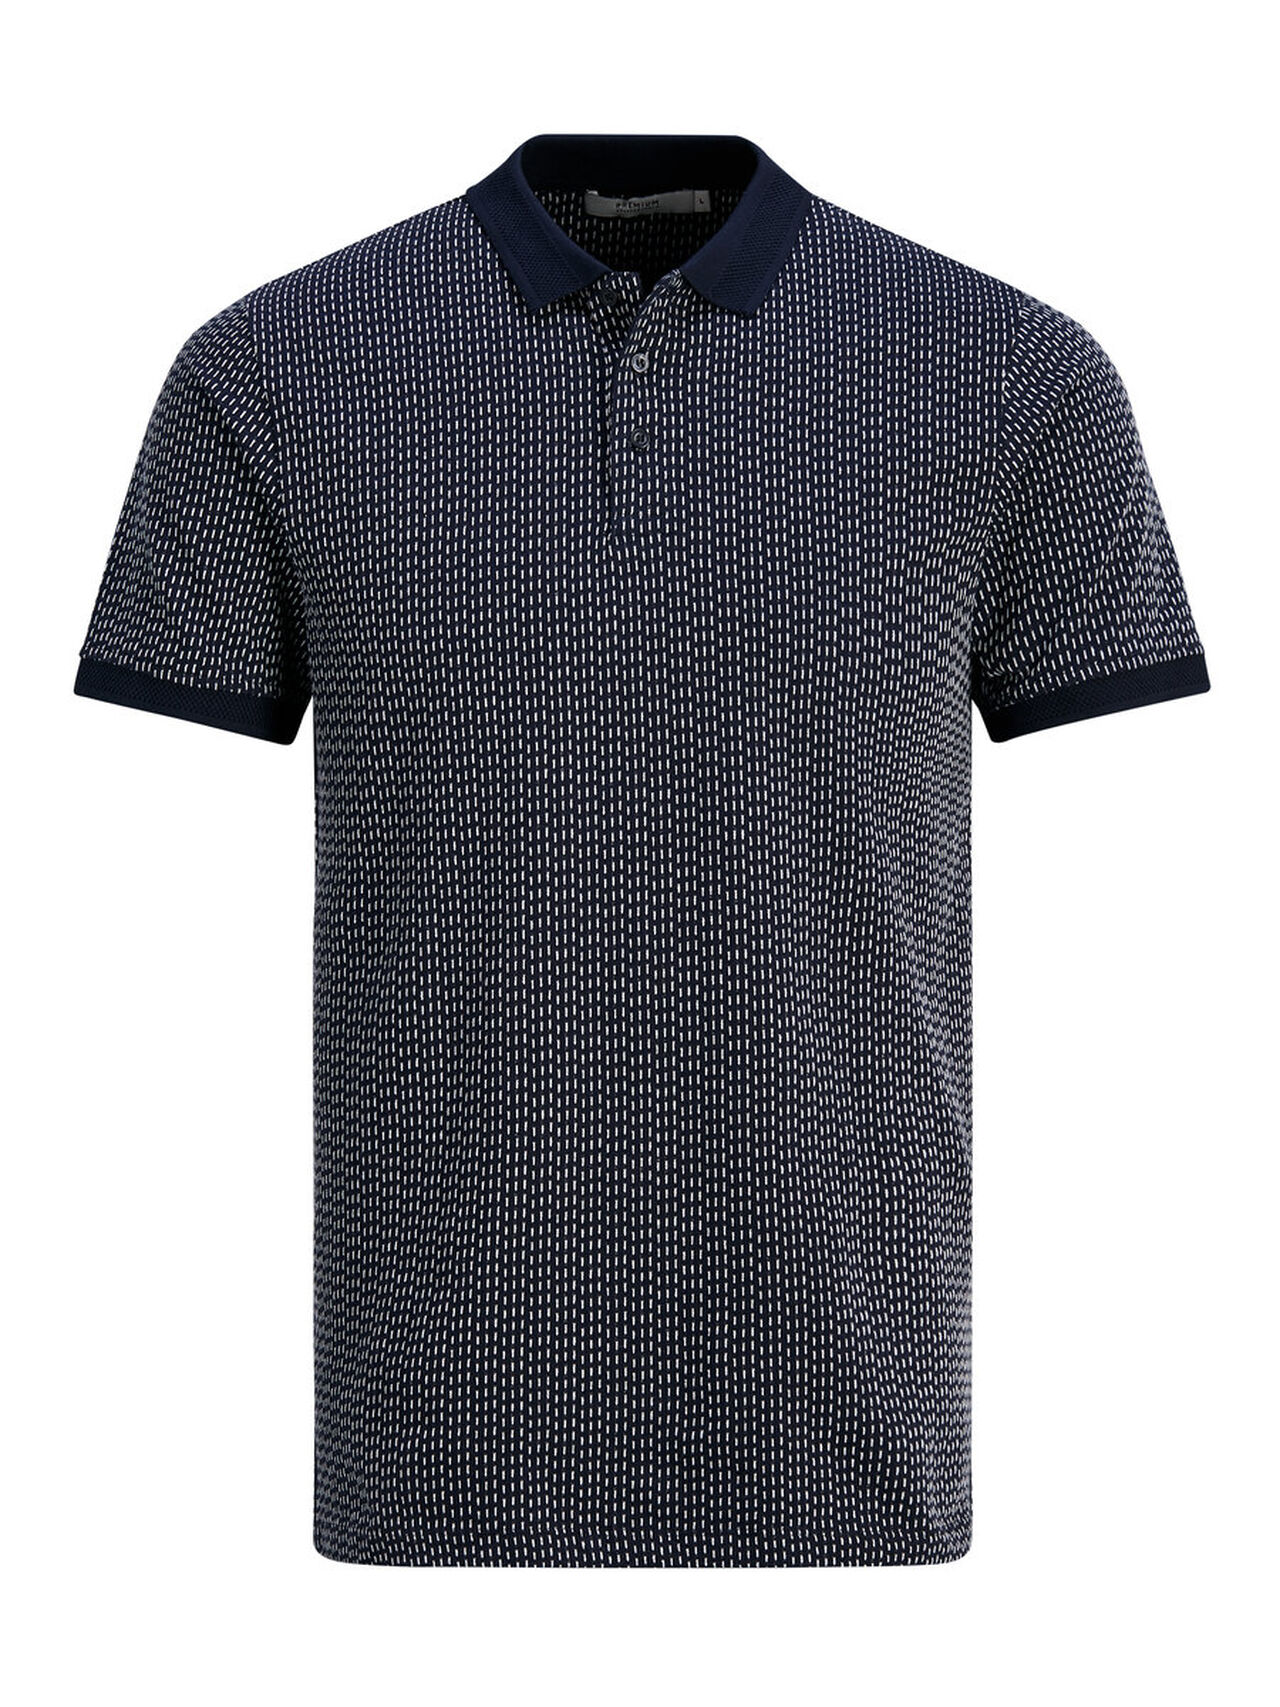 JACK & JONES Slim Fit Poloshirt Heren Blauw thumbnail